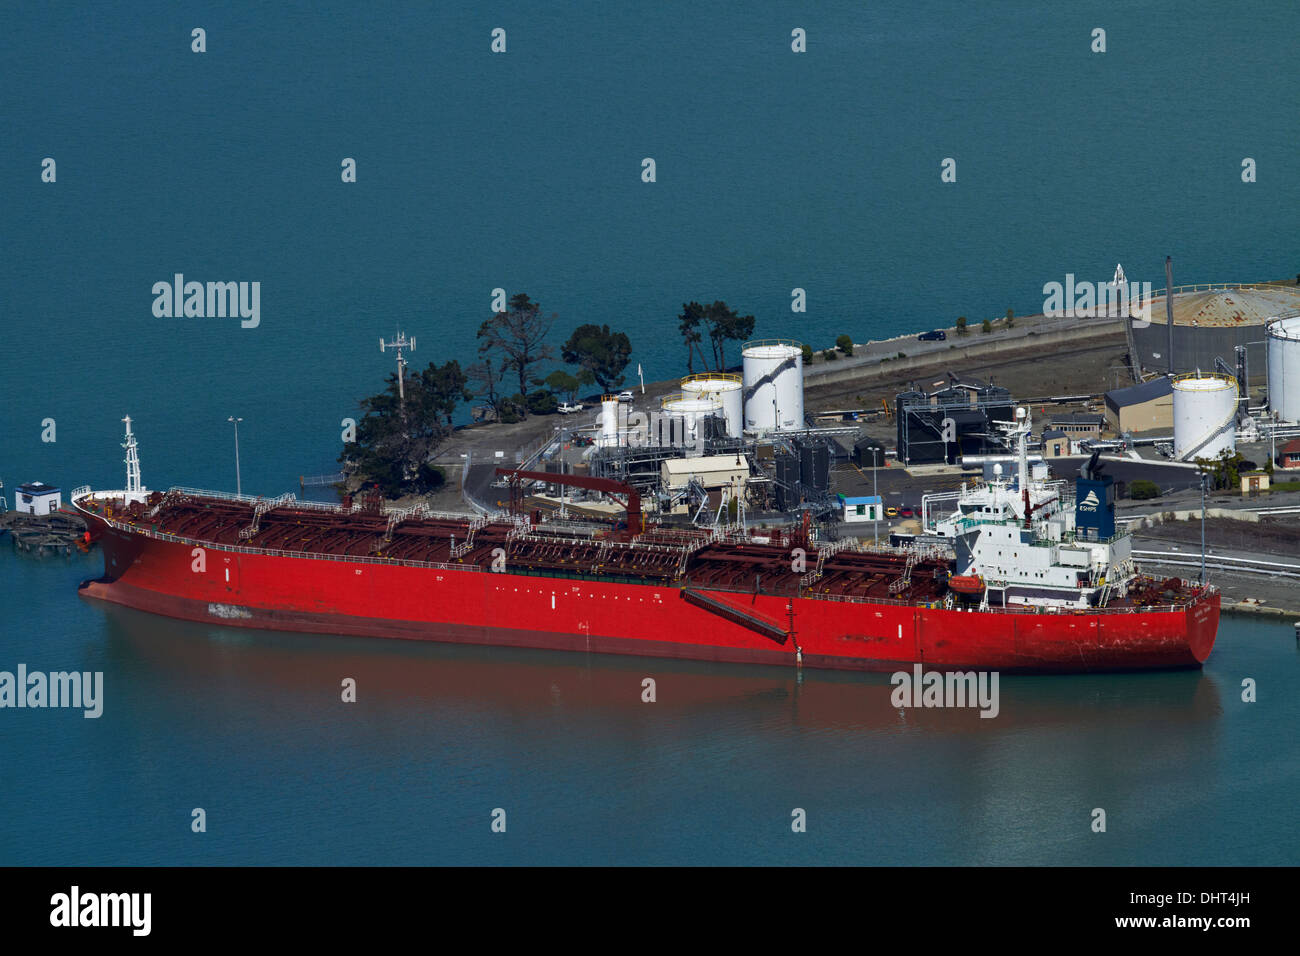 Bulk carrier at oil terminal, Port of Lyttelton, Lyttelton Harbour, Canterbury, South Island, New Zealand - Stock Image